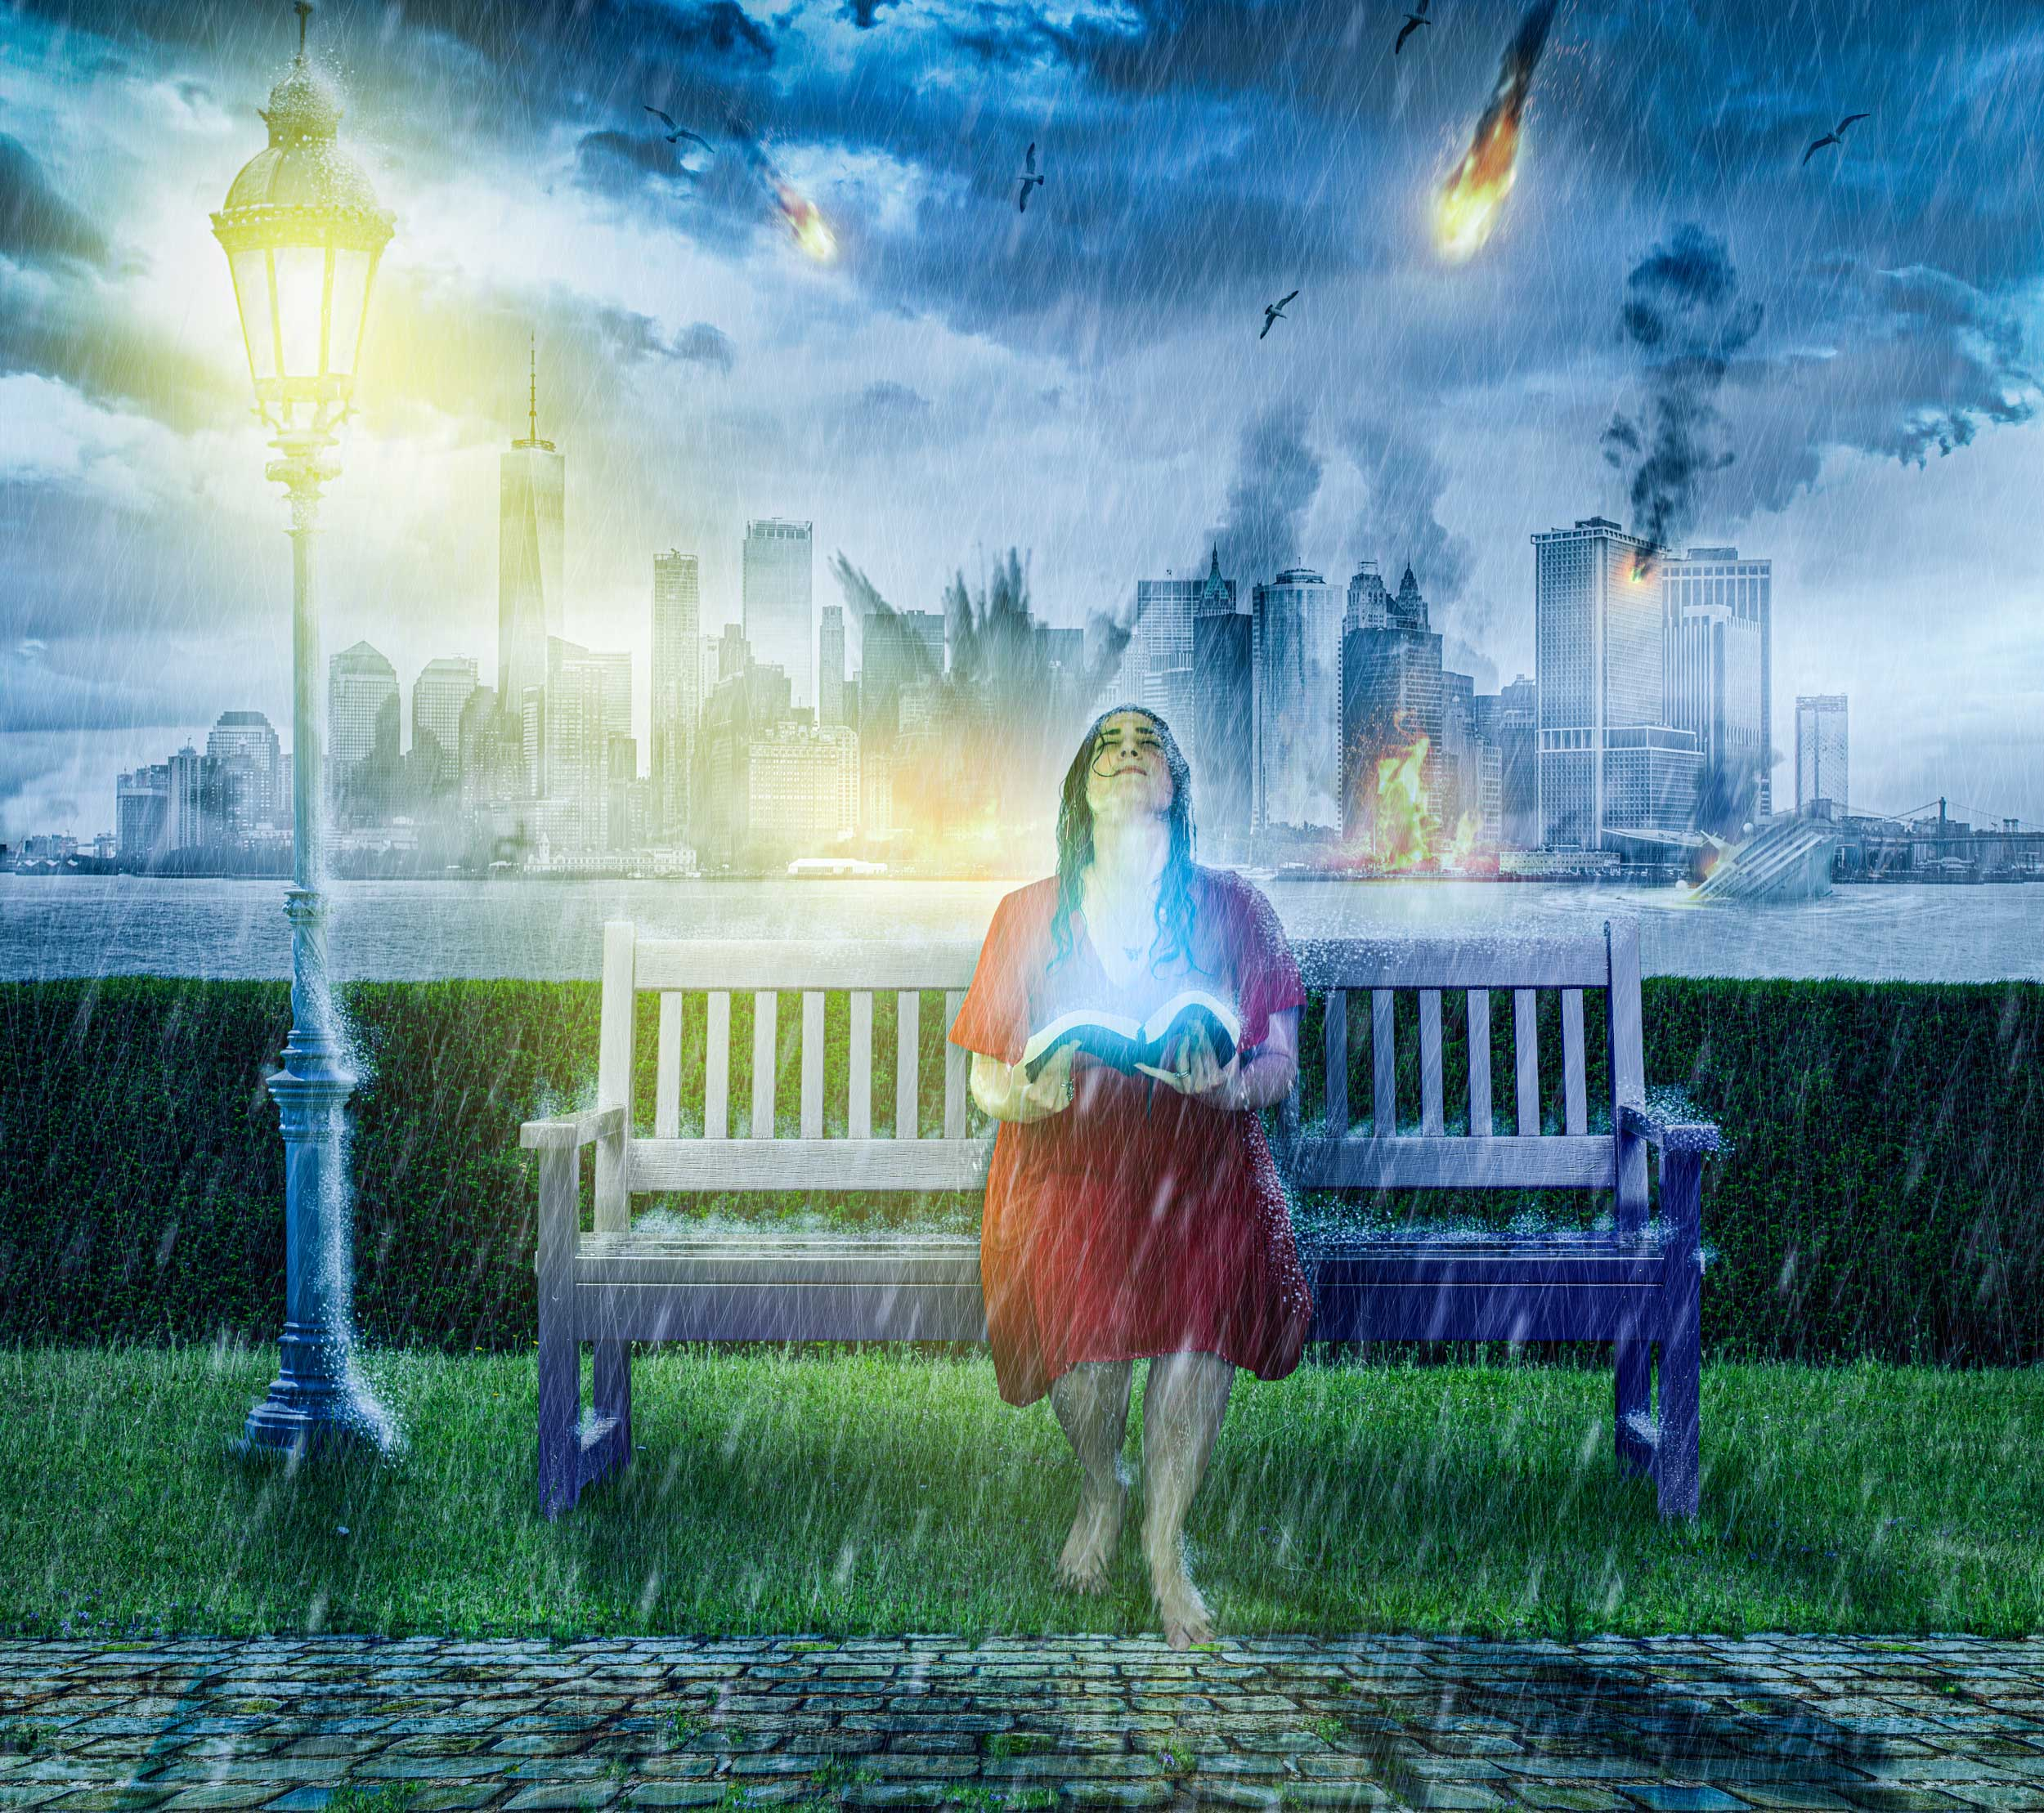 A woman sits on a park bench in the rain, holding her Bible as a city is being destroyed behind her.